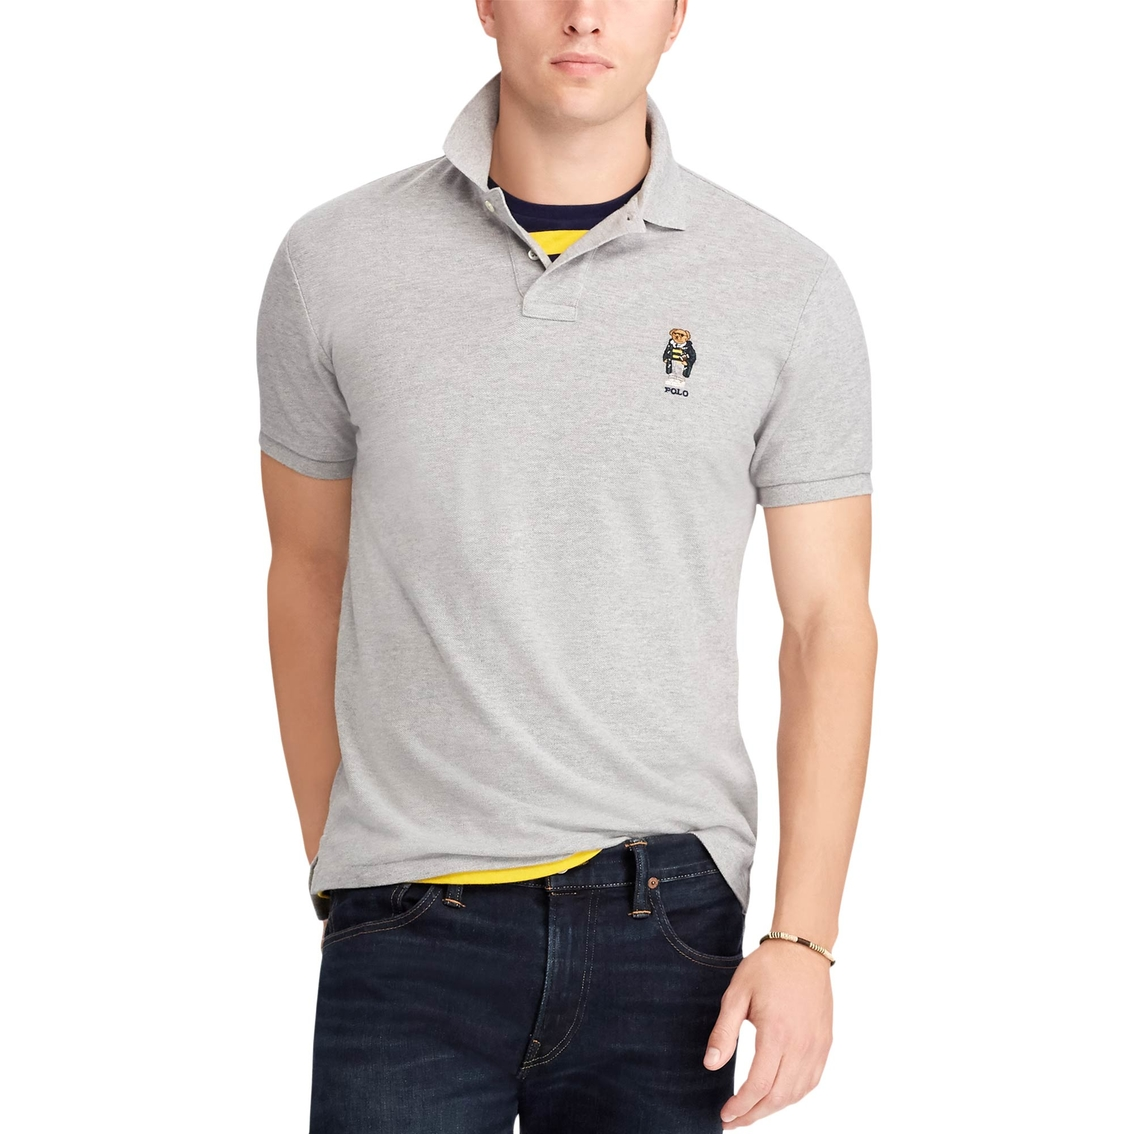 Polo Ralph Lauren Classic Fit Bear Polo Shirt   Polos   Apparel ... 5dbce298c4e